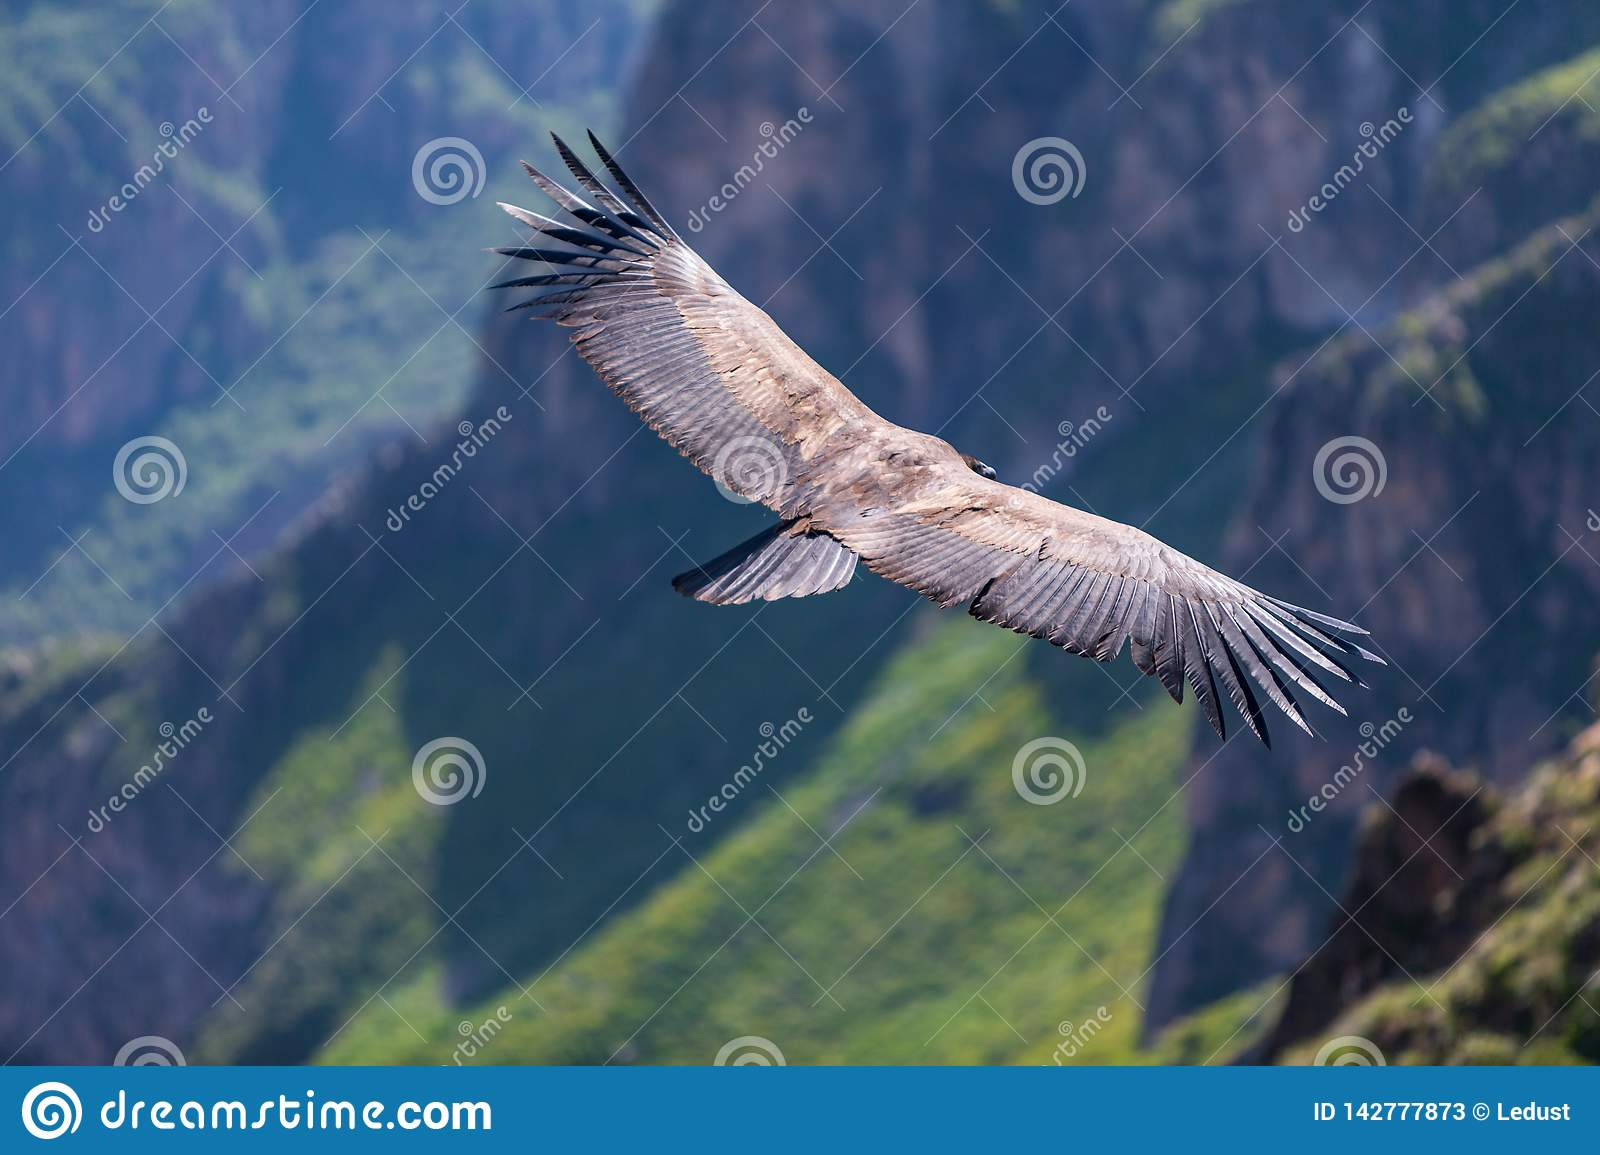 Backview of Condor flying over the colca Canyon in chivay, Peru looking for dead prey